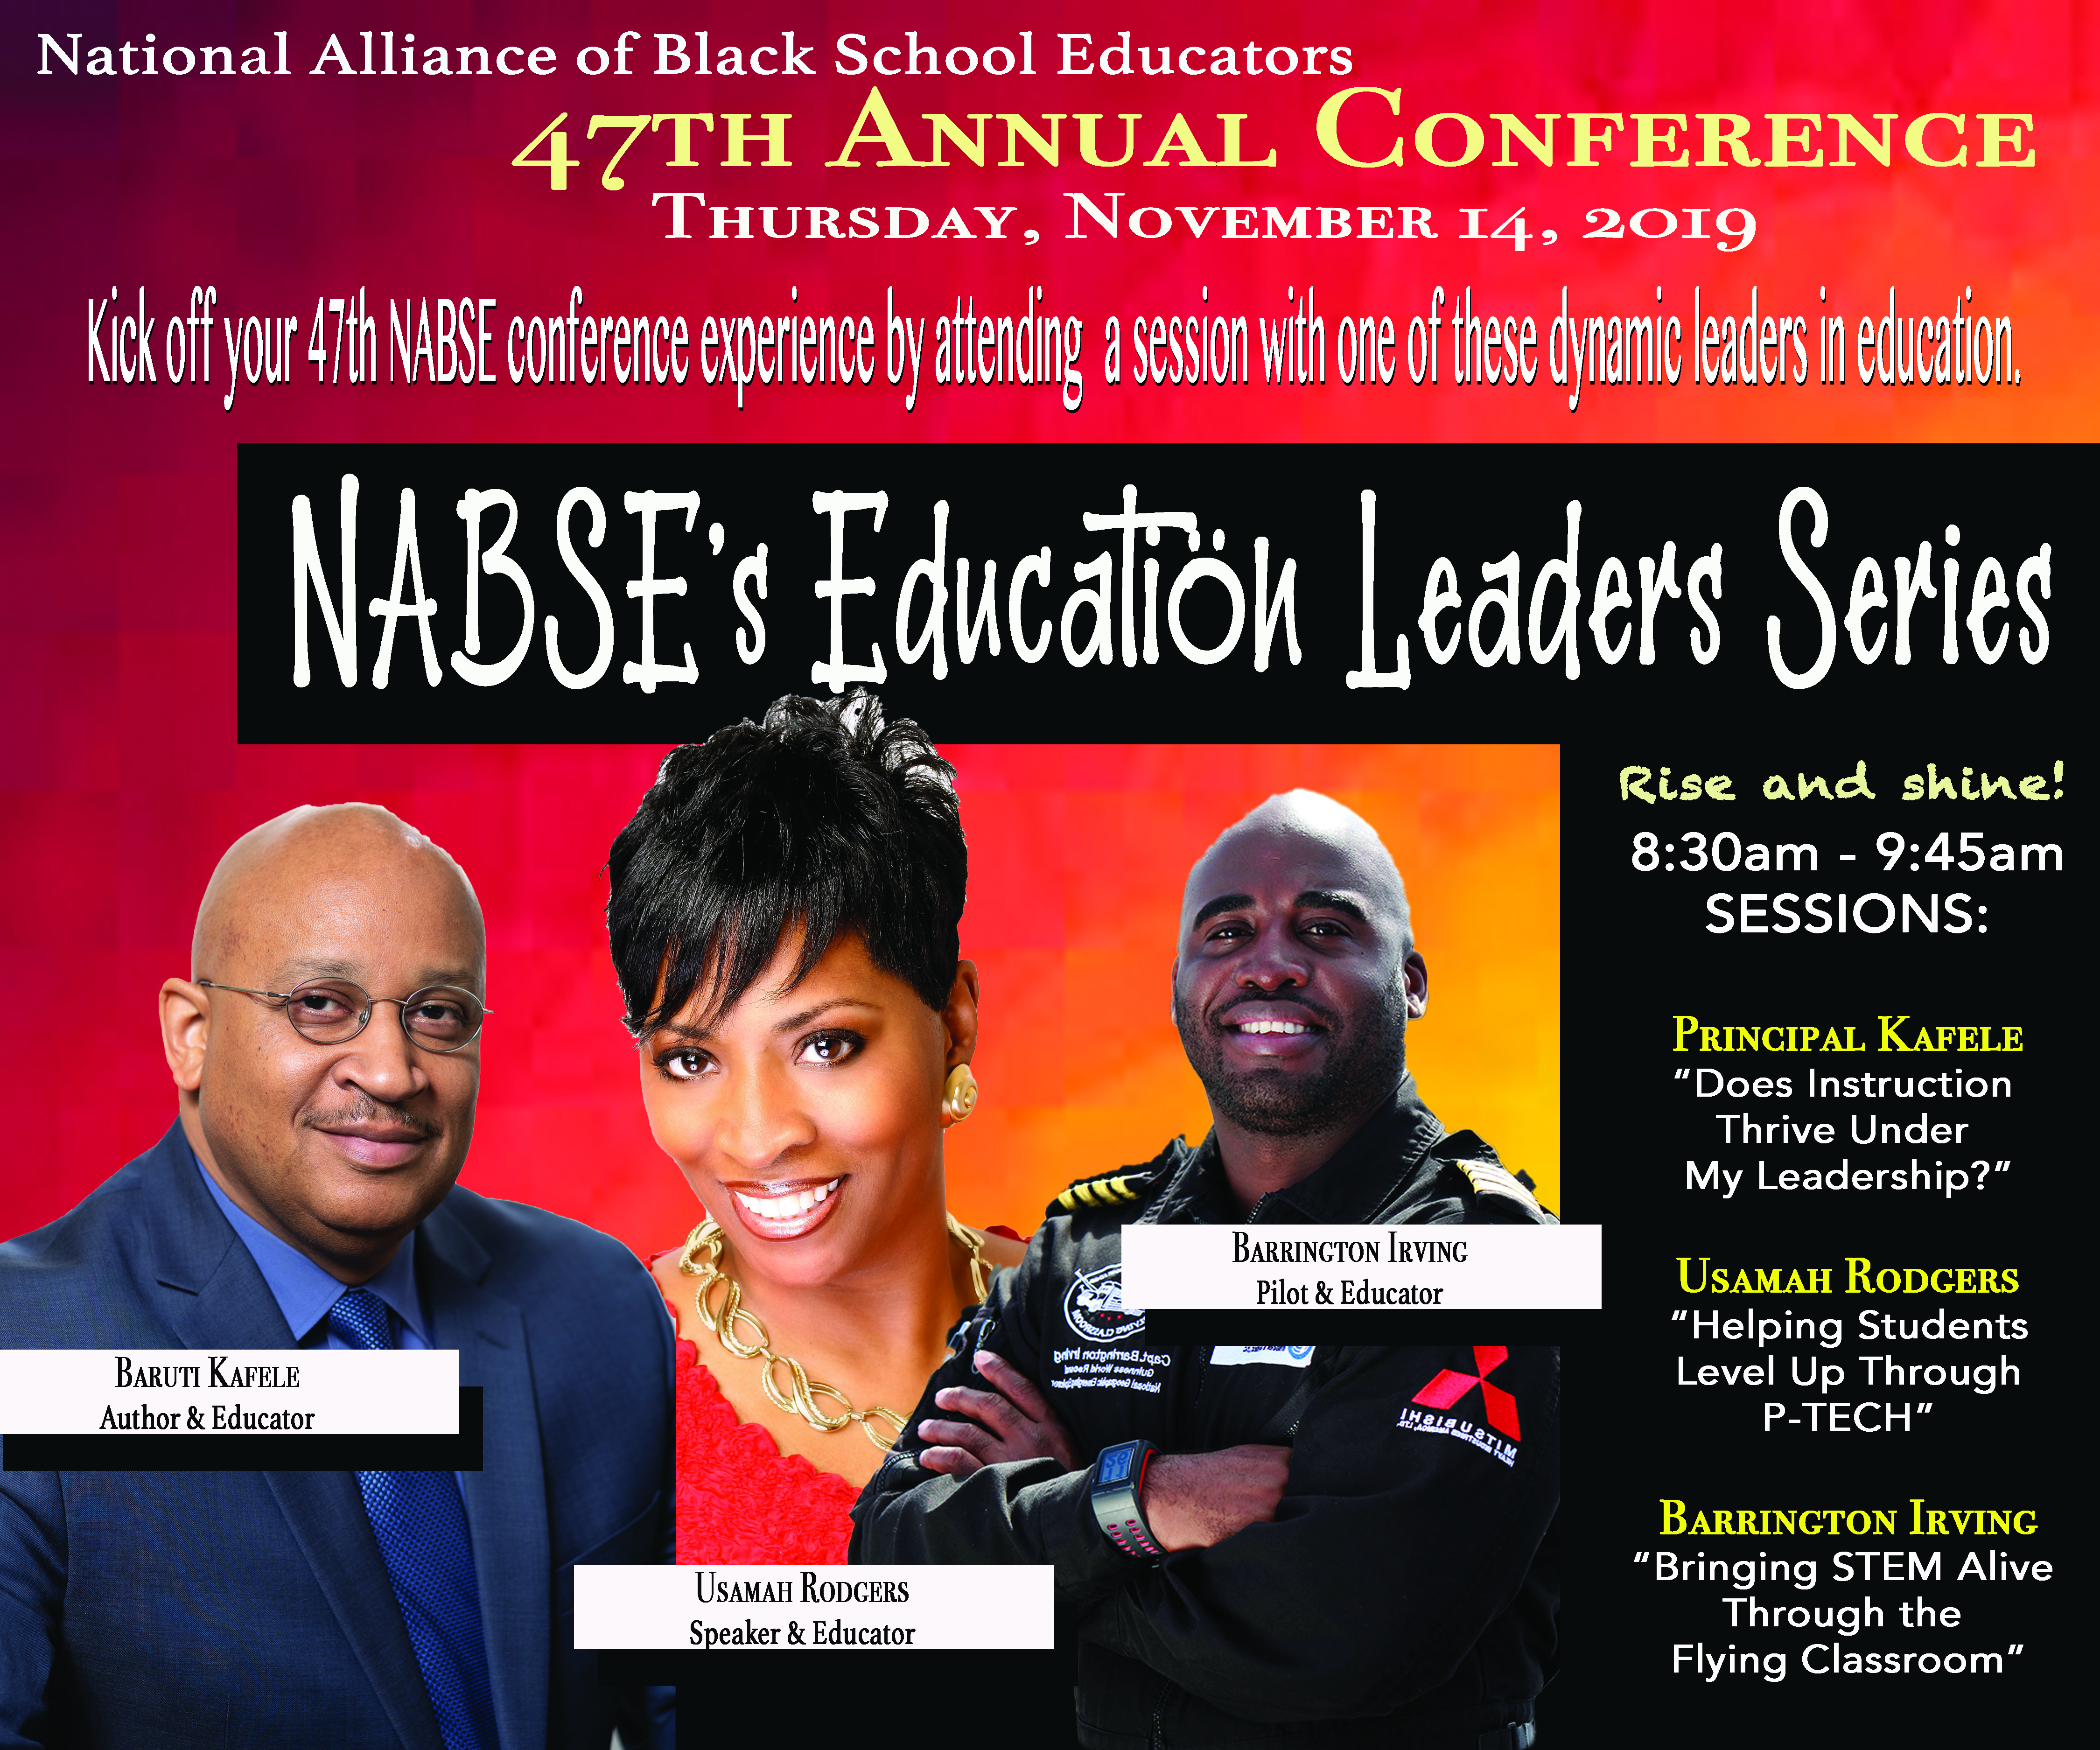 NABSE's Education Leader Series